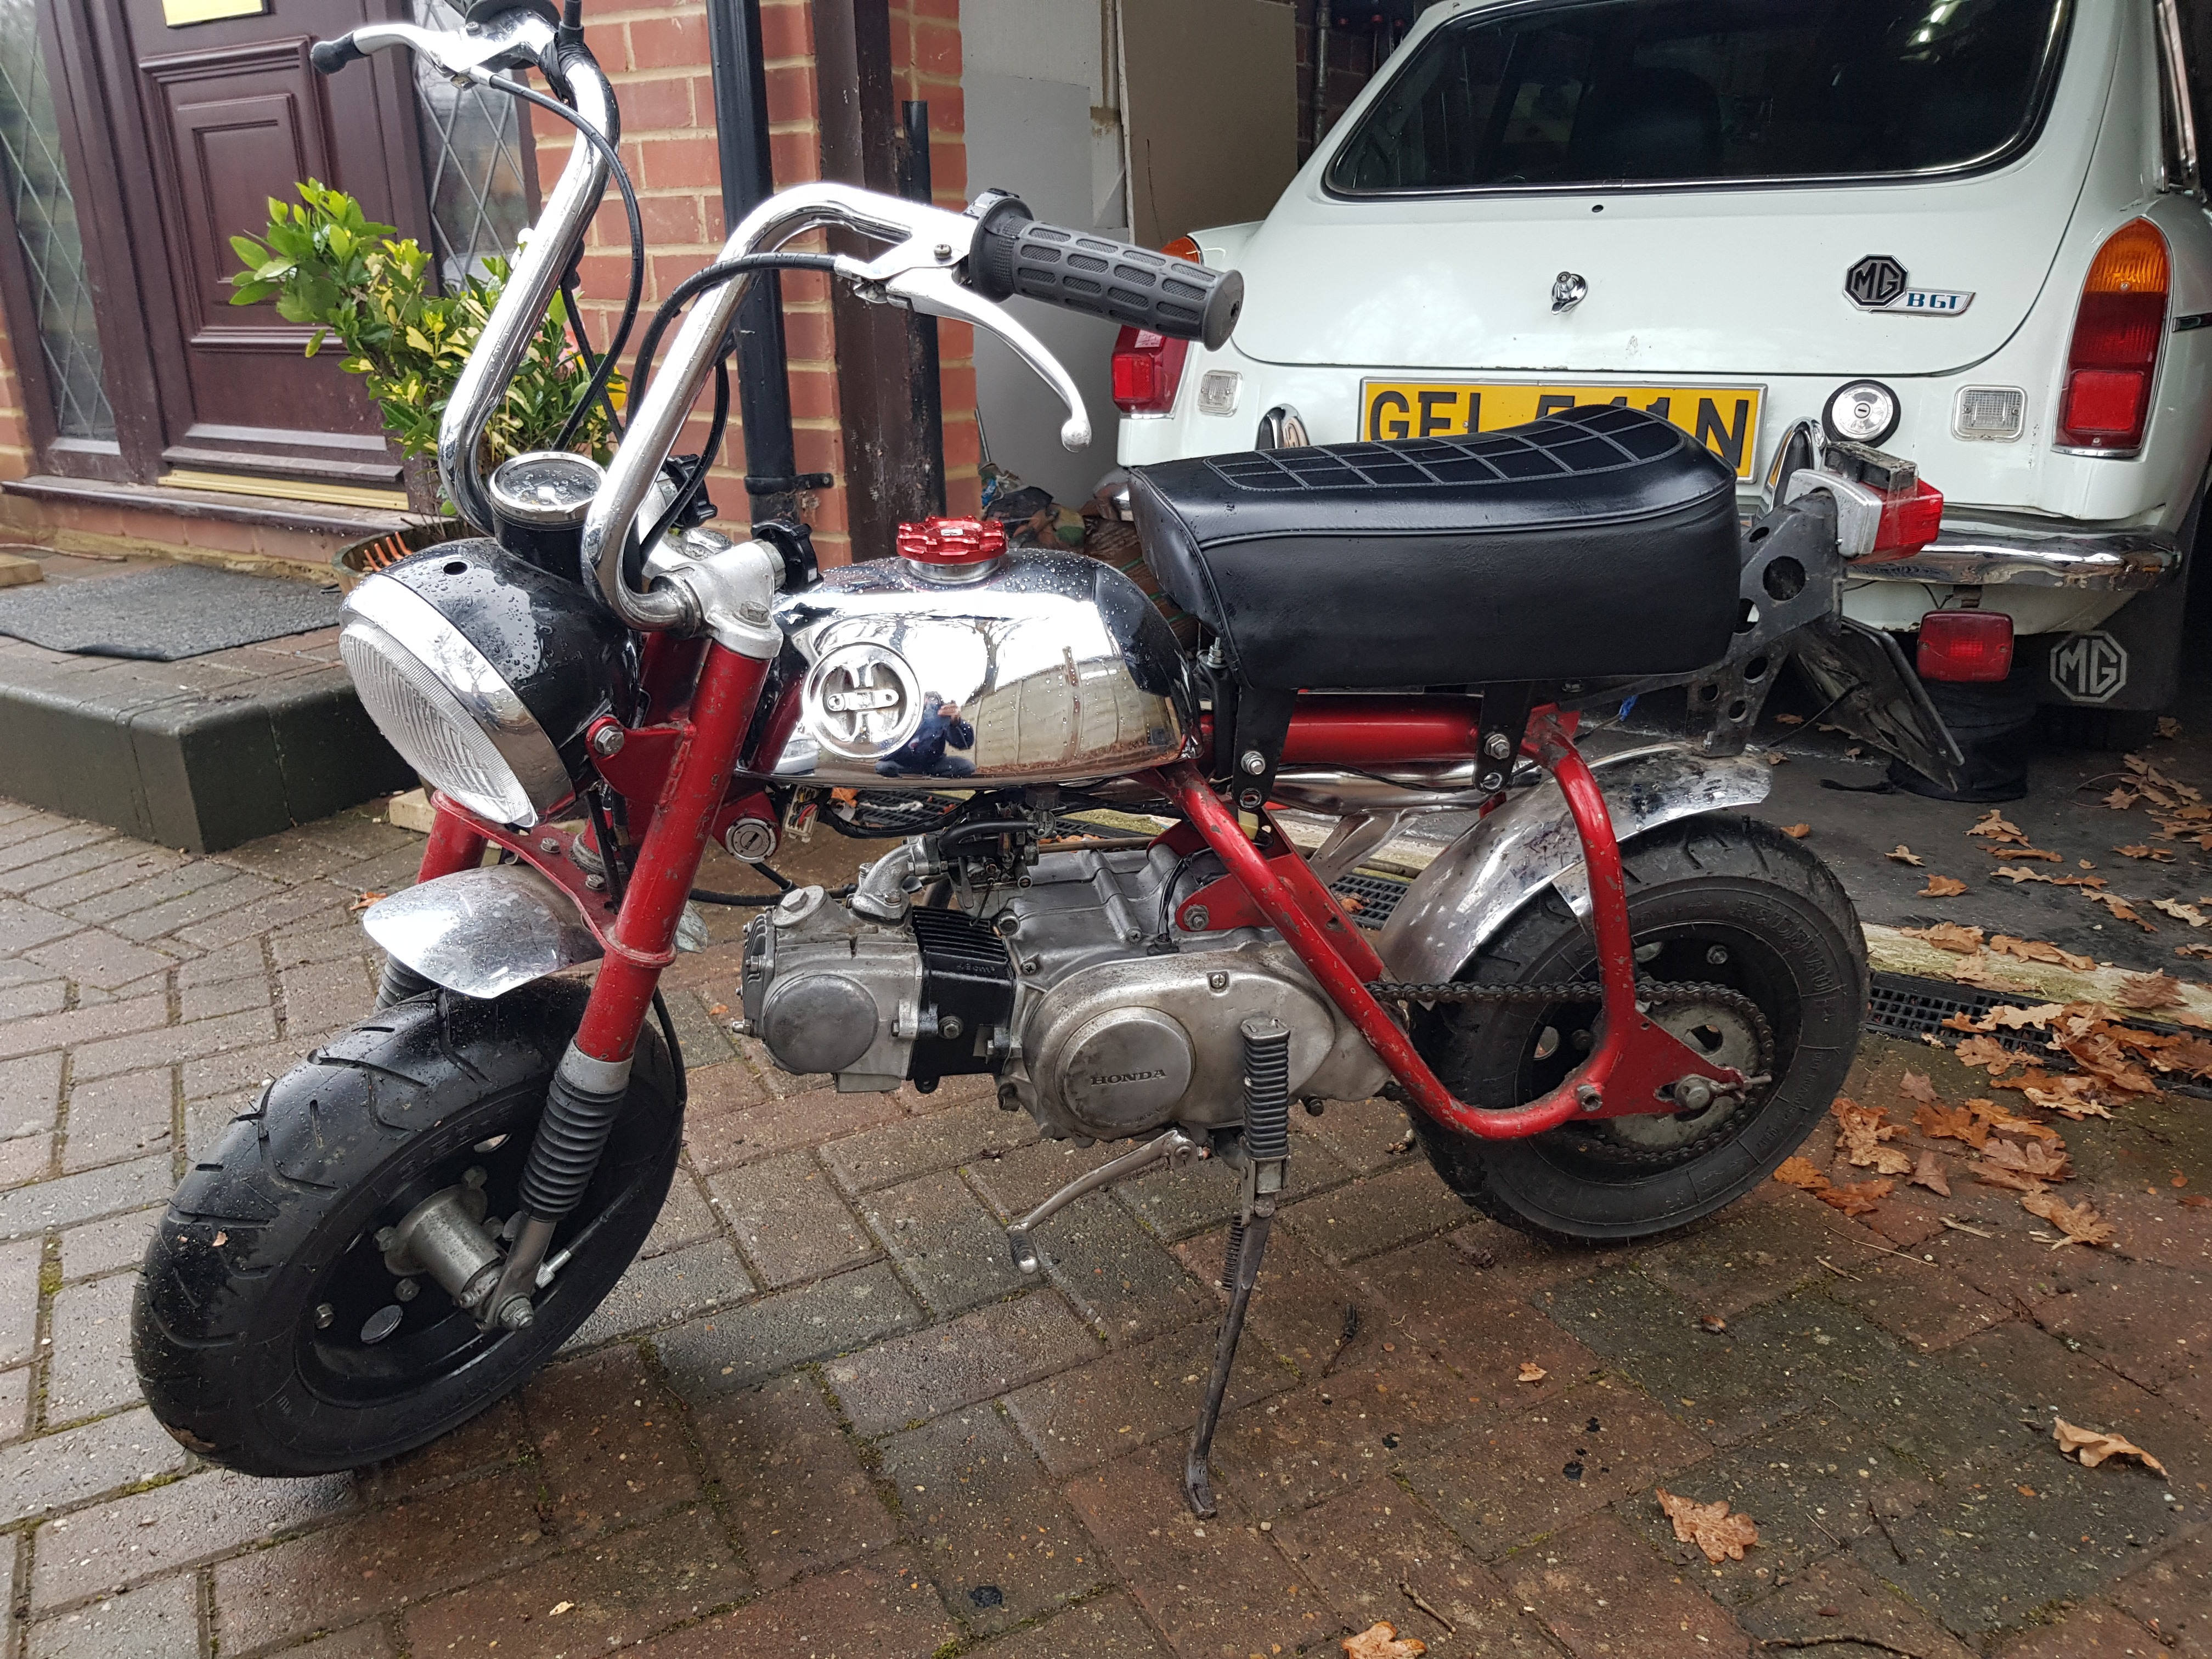 Circa 1970 Honda Monkey Bike Project Resto Page 4 Overclockers Ct70 Valve Guide Done A Bit Of Polishing On The Engine Block When It Was Out Along With Lot De Greasing But Flywheel Cover Is Going To Need Some Work